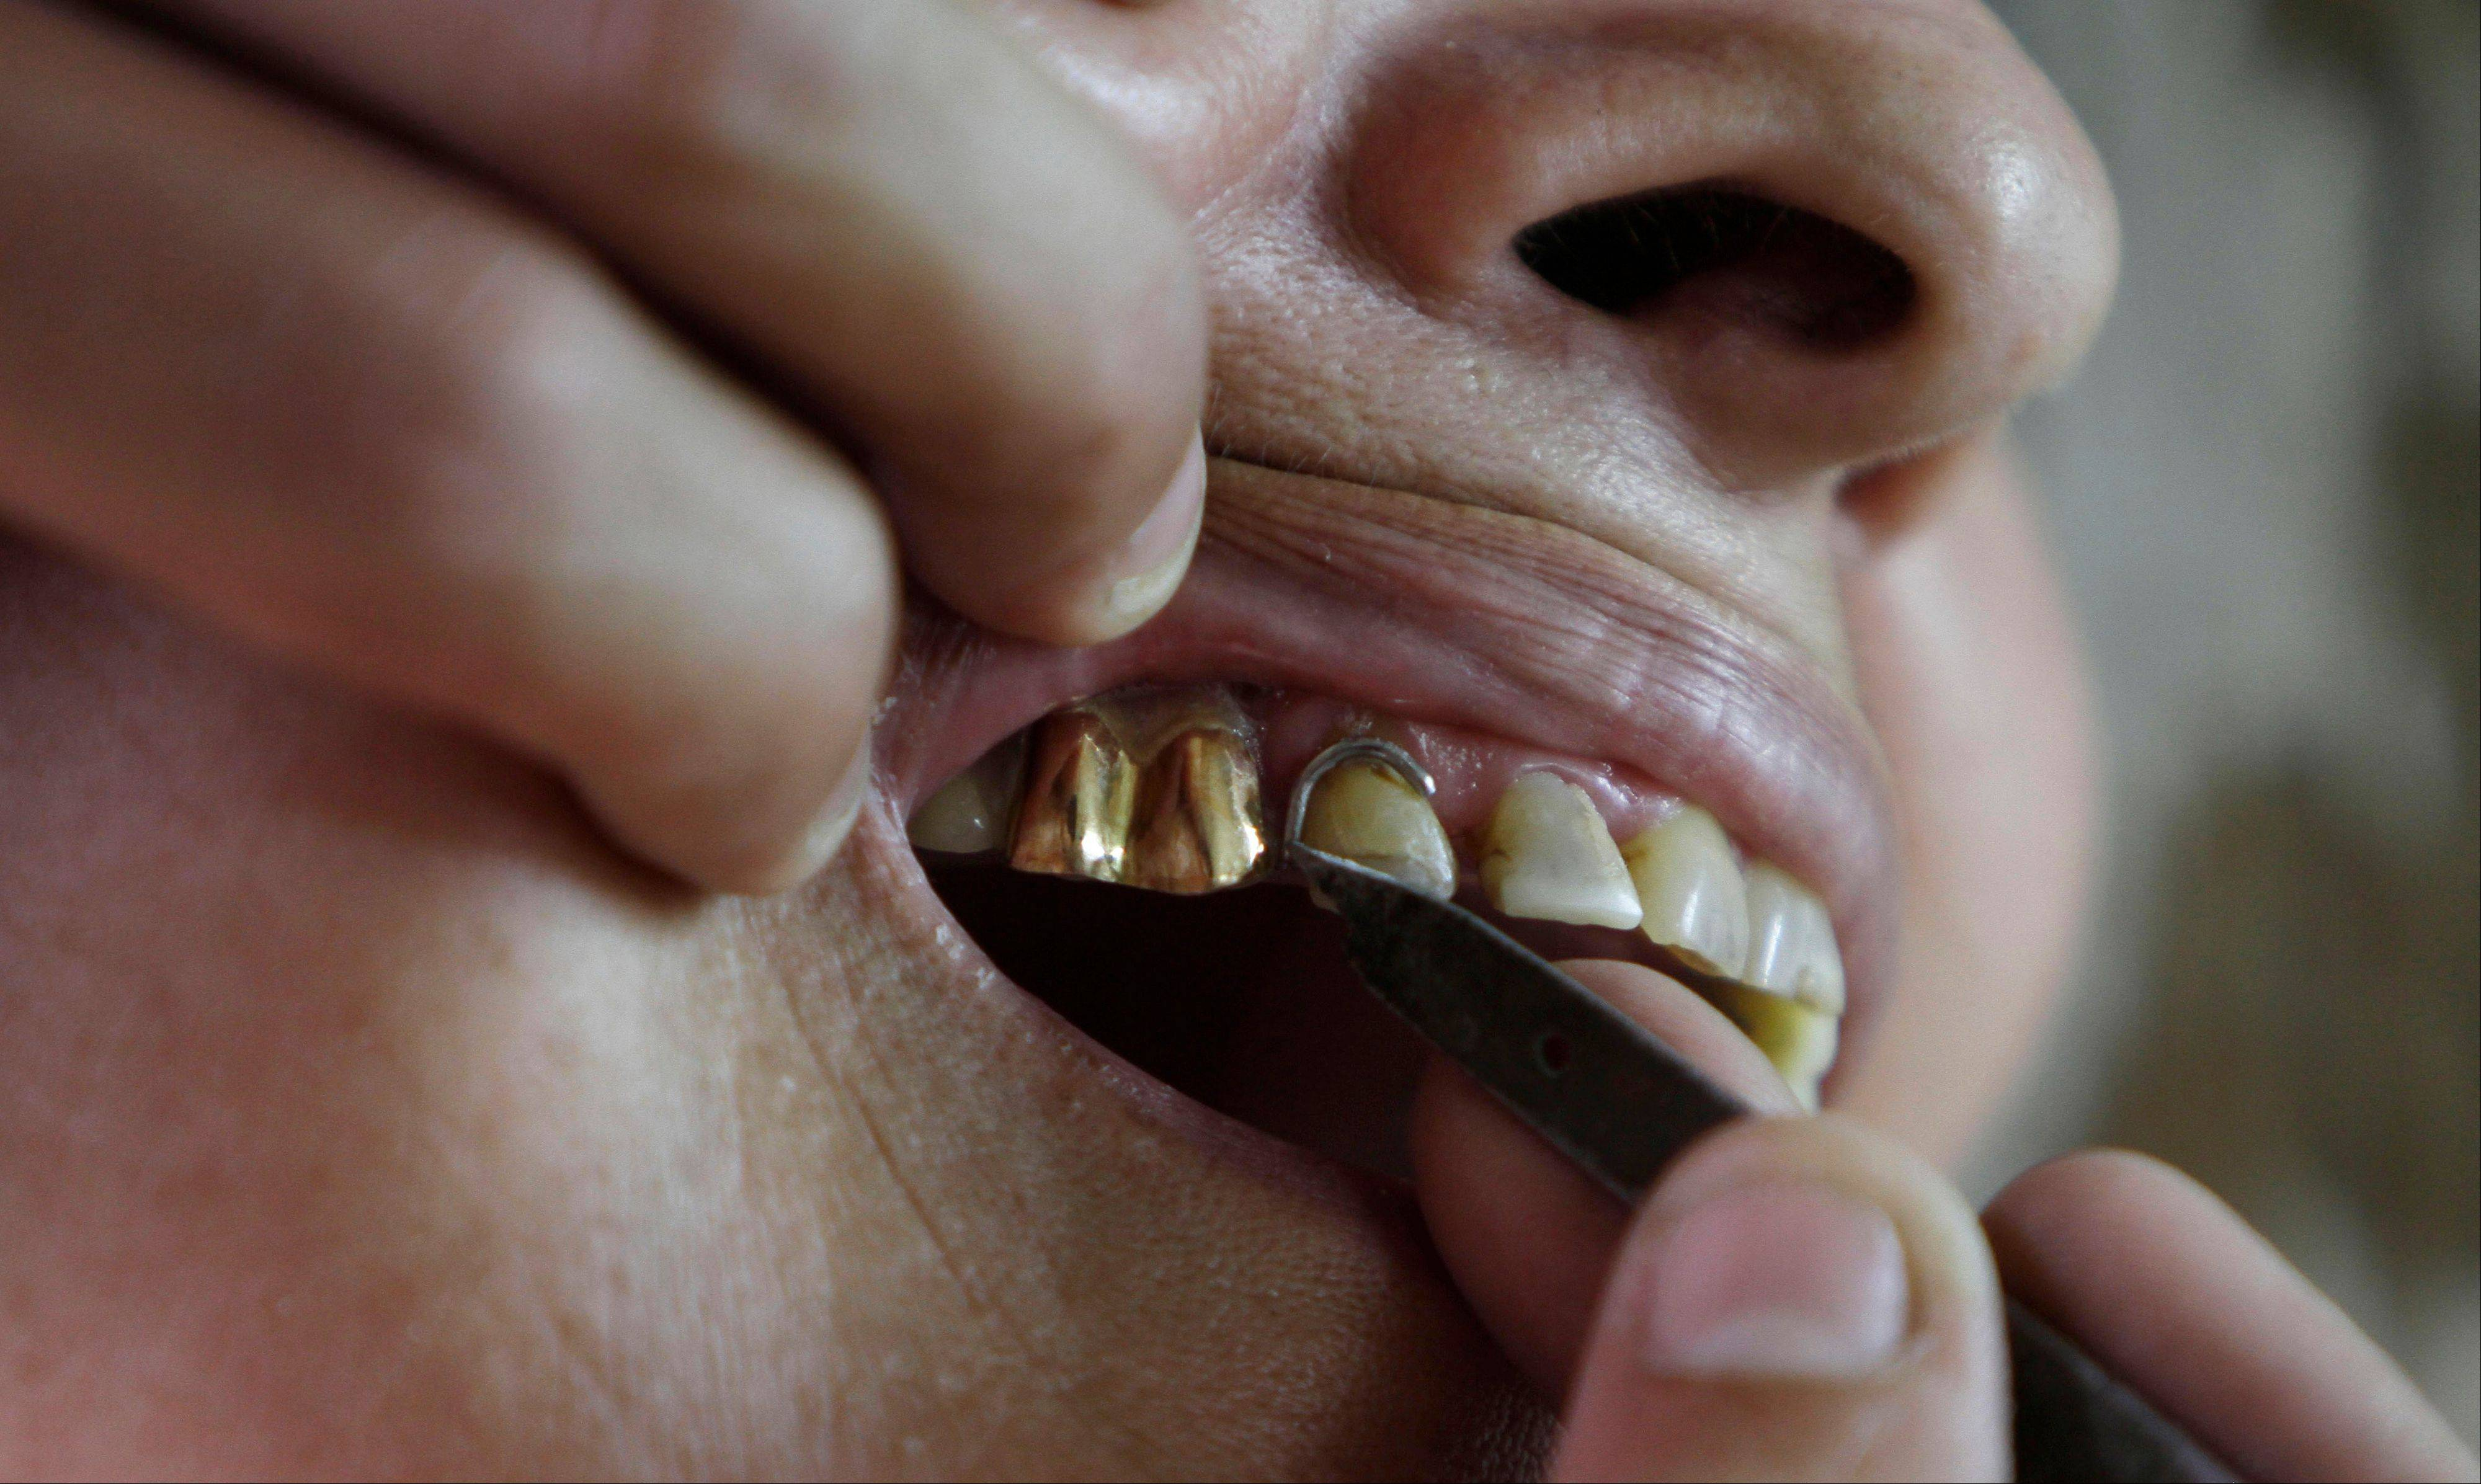 A woman has golden teeth put in her mouth at the workshop of a false tooth maker in Havana. The tooth maker charges up to $40 per tooth, including installation, using gold melted down from jewelry and trinkets he buys from secret suppliers.